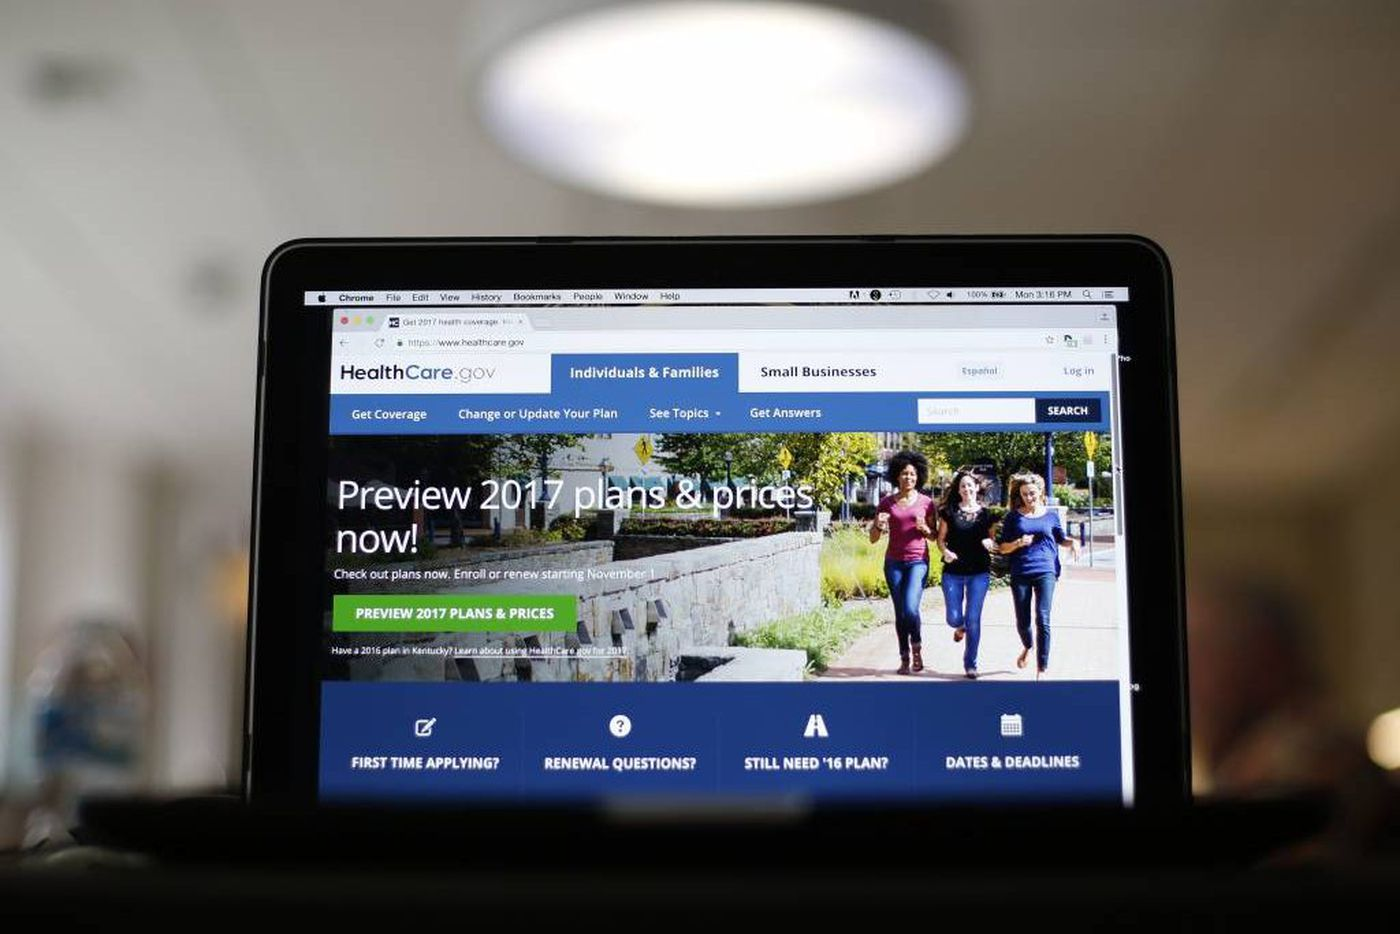 Healthcare.gov System Hack Leaks Personal Information Of About 75,000 People